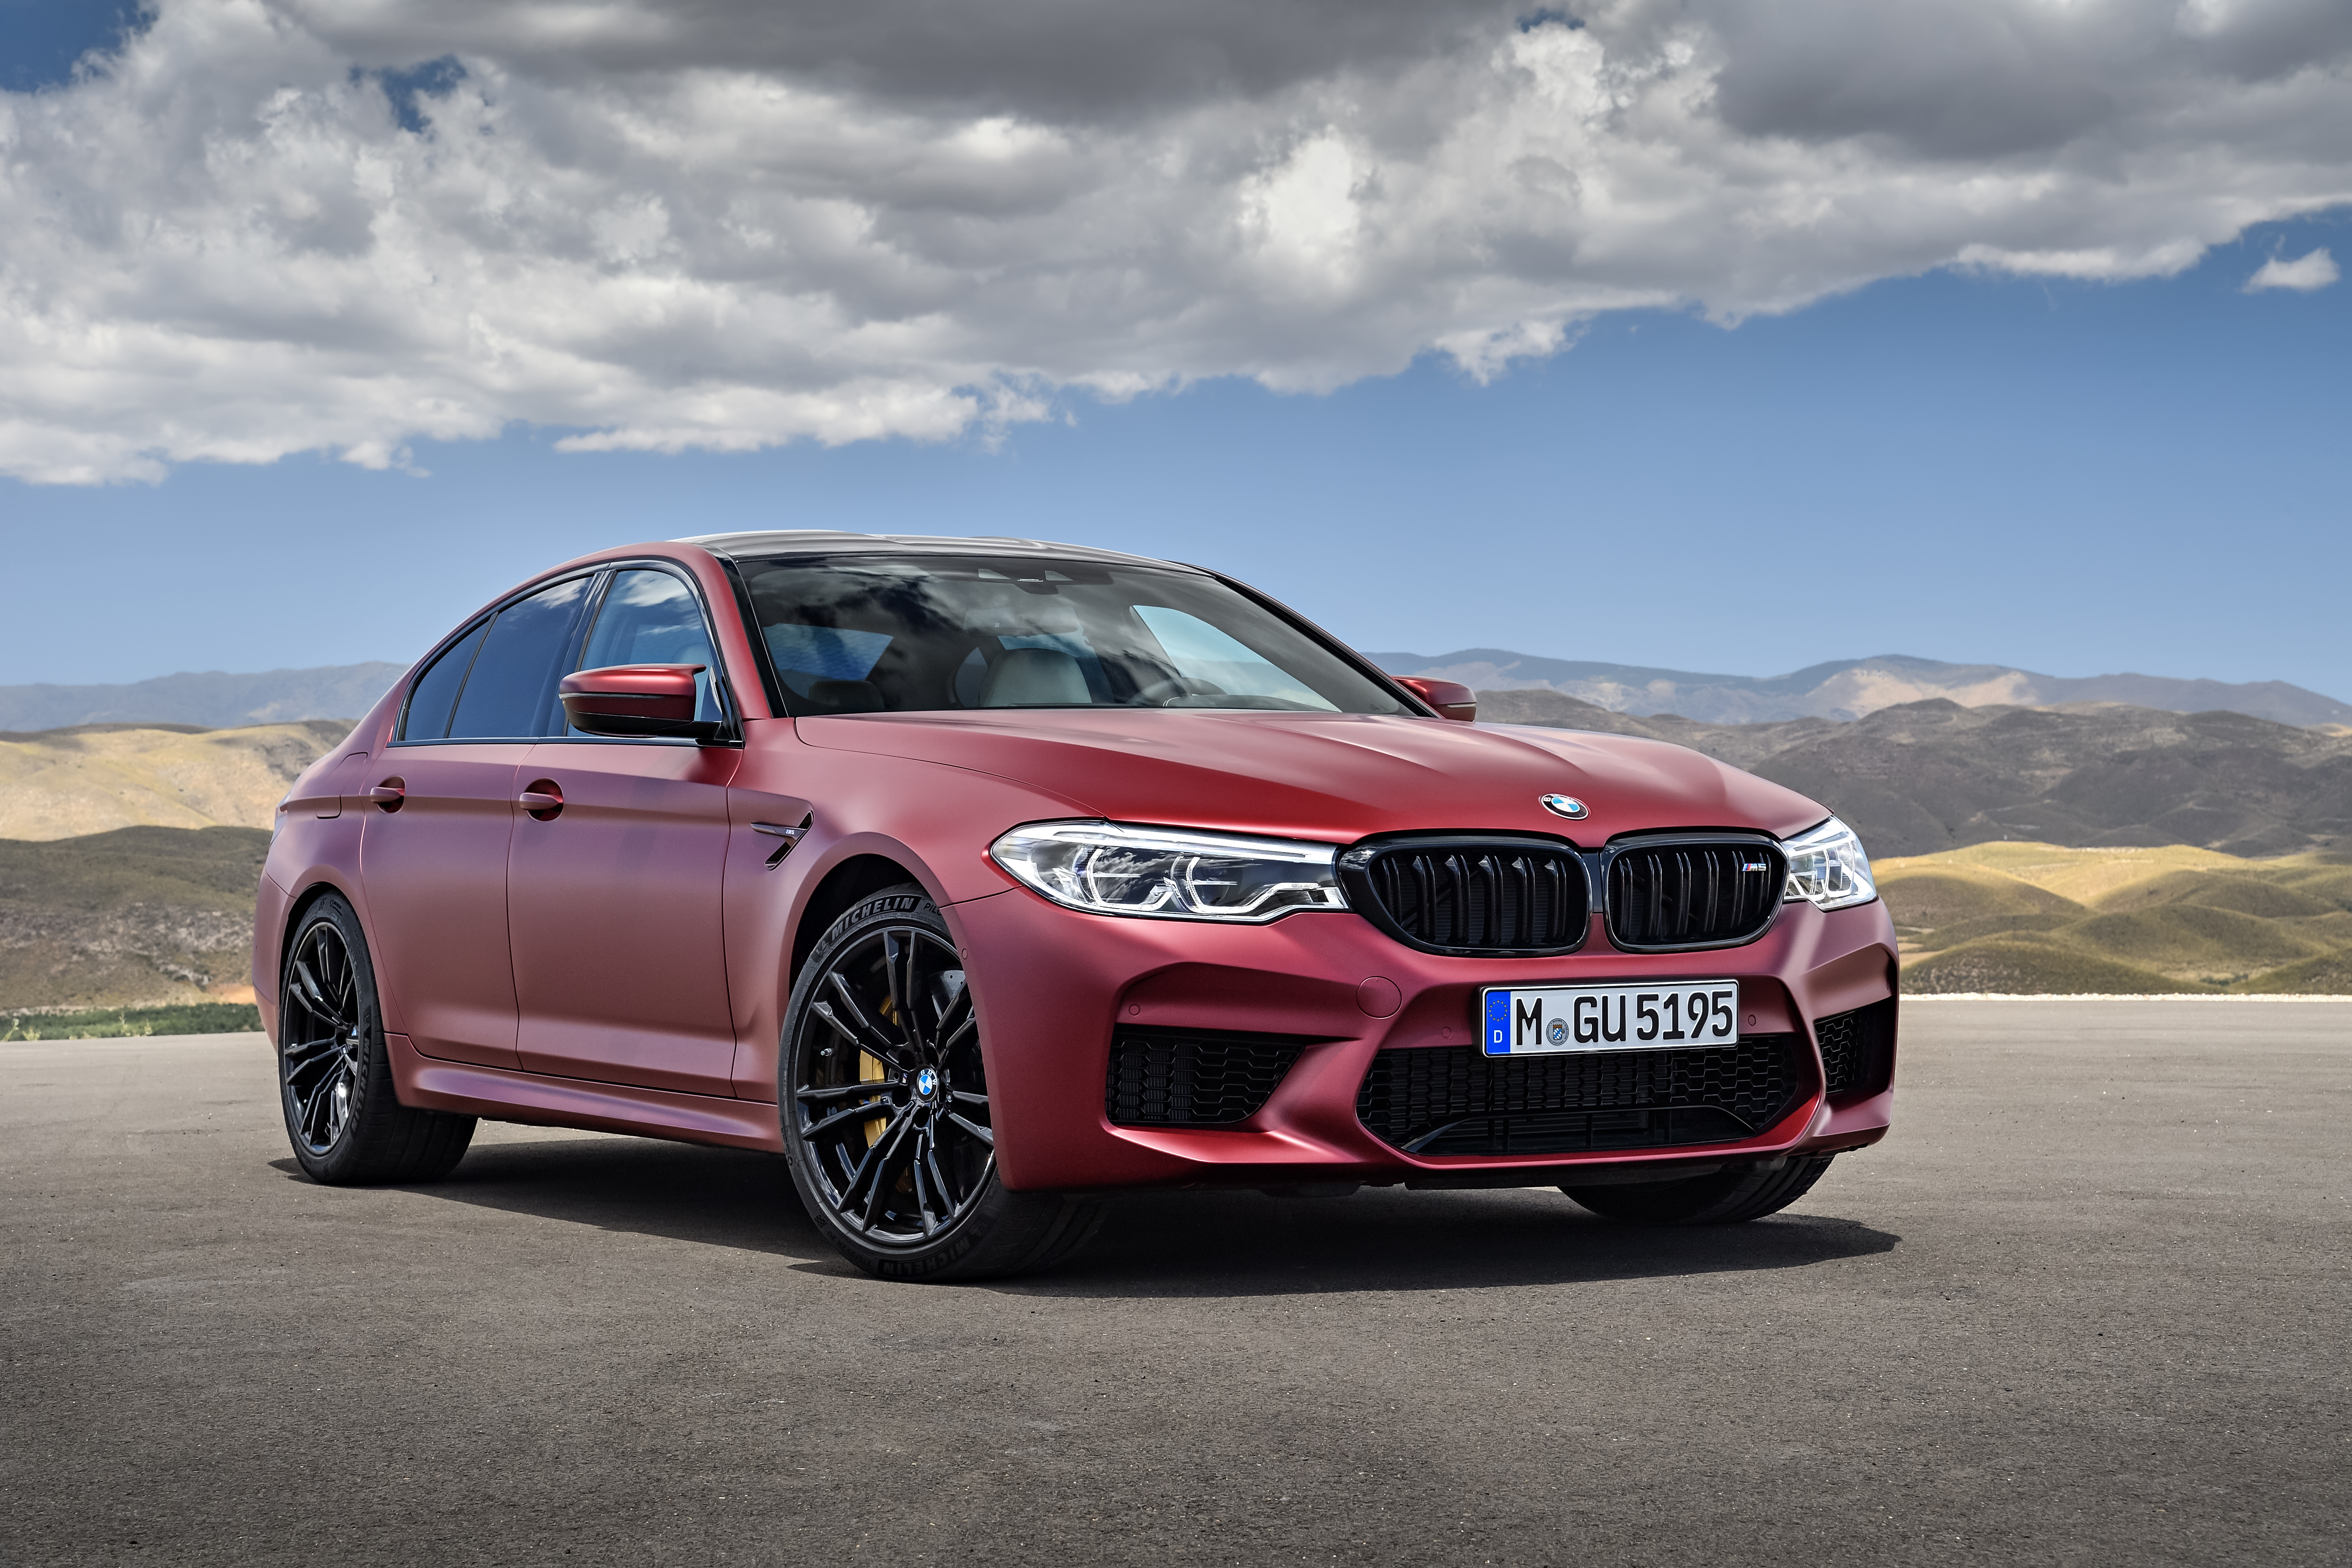 2018 Bmw M5 Us Release Date >> 2018 BMW M5 F90 Official Thread: Information, Specs, Wallpapers and Videos Galore